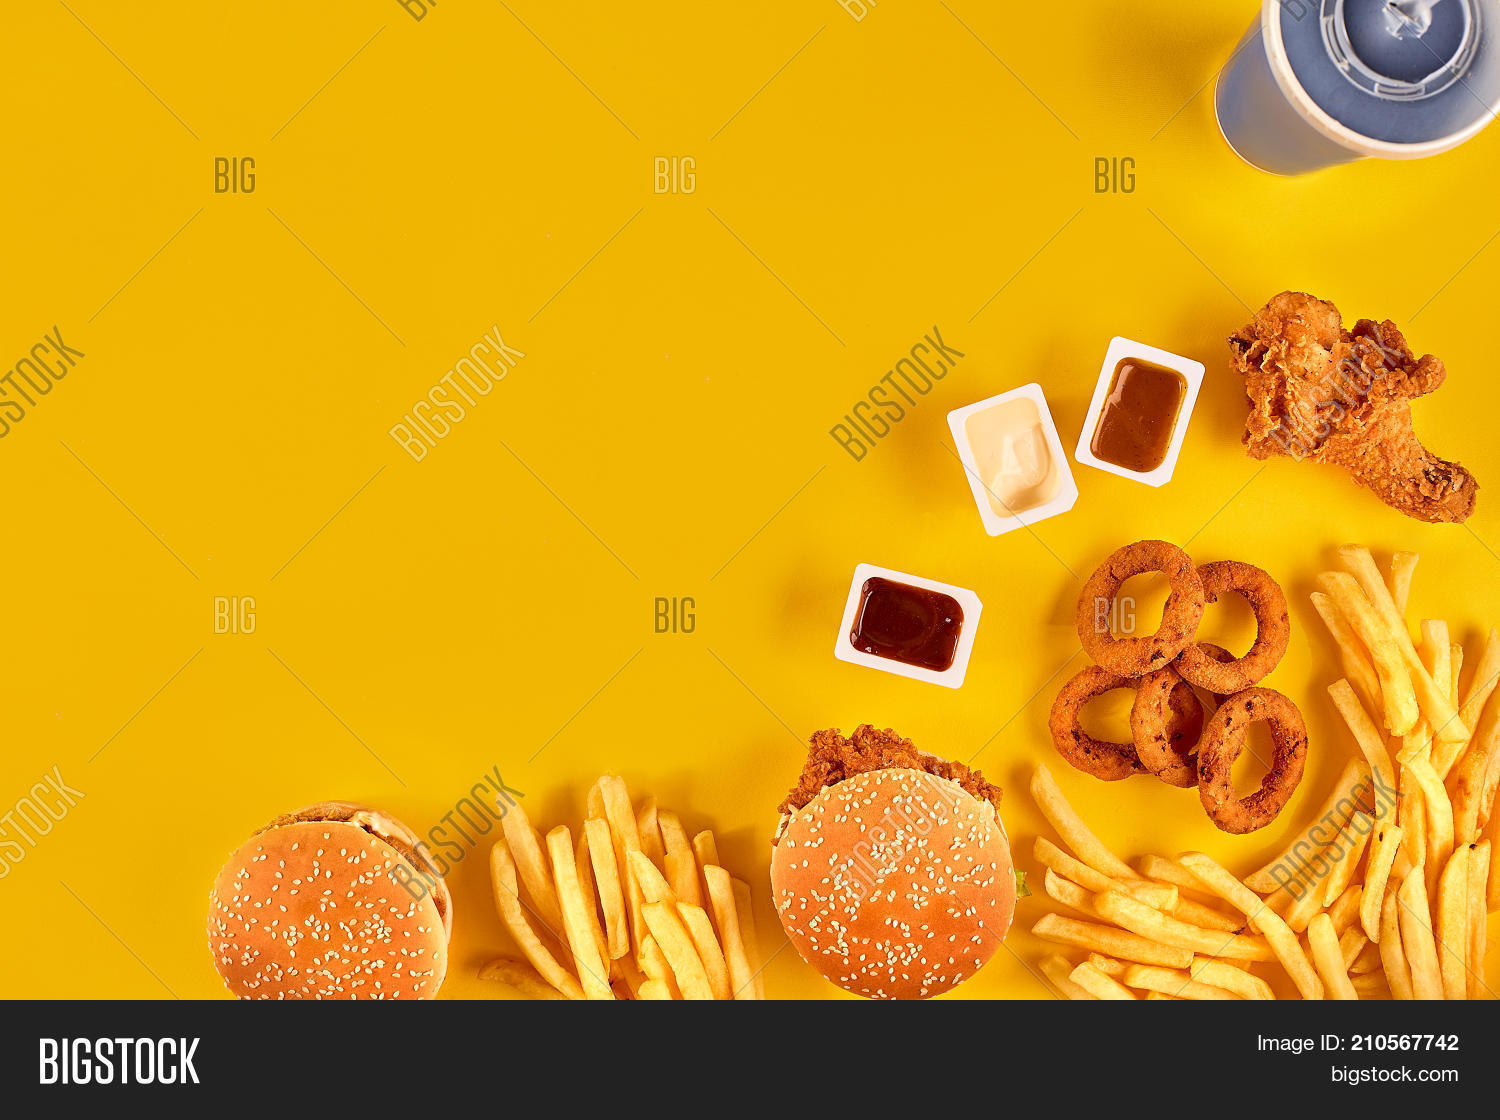 Fast Food Dish Top View Meat Burger Potato Chips And Chicken Take Away